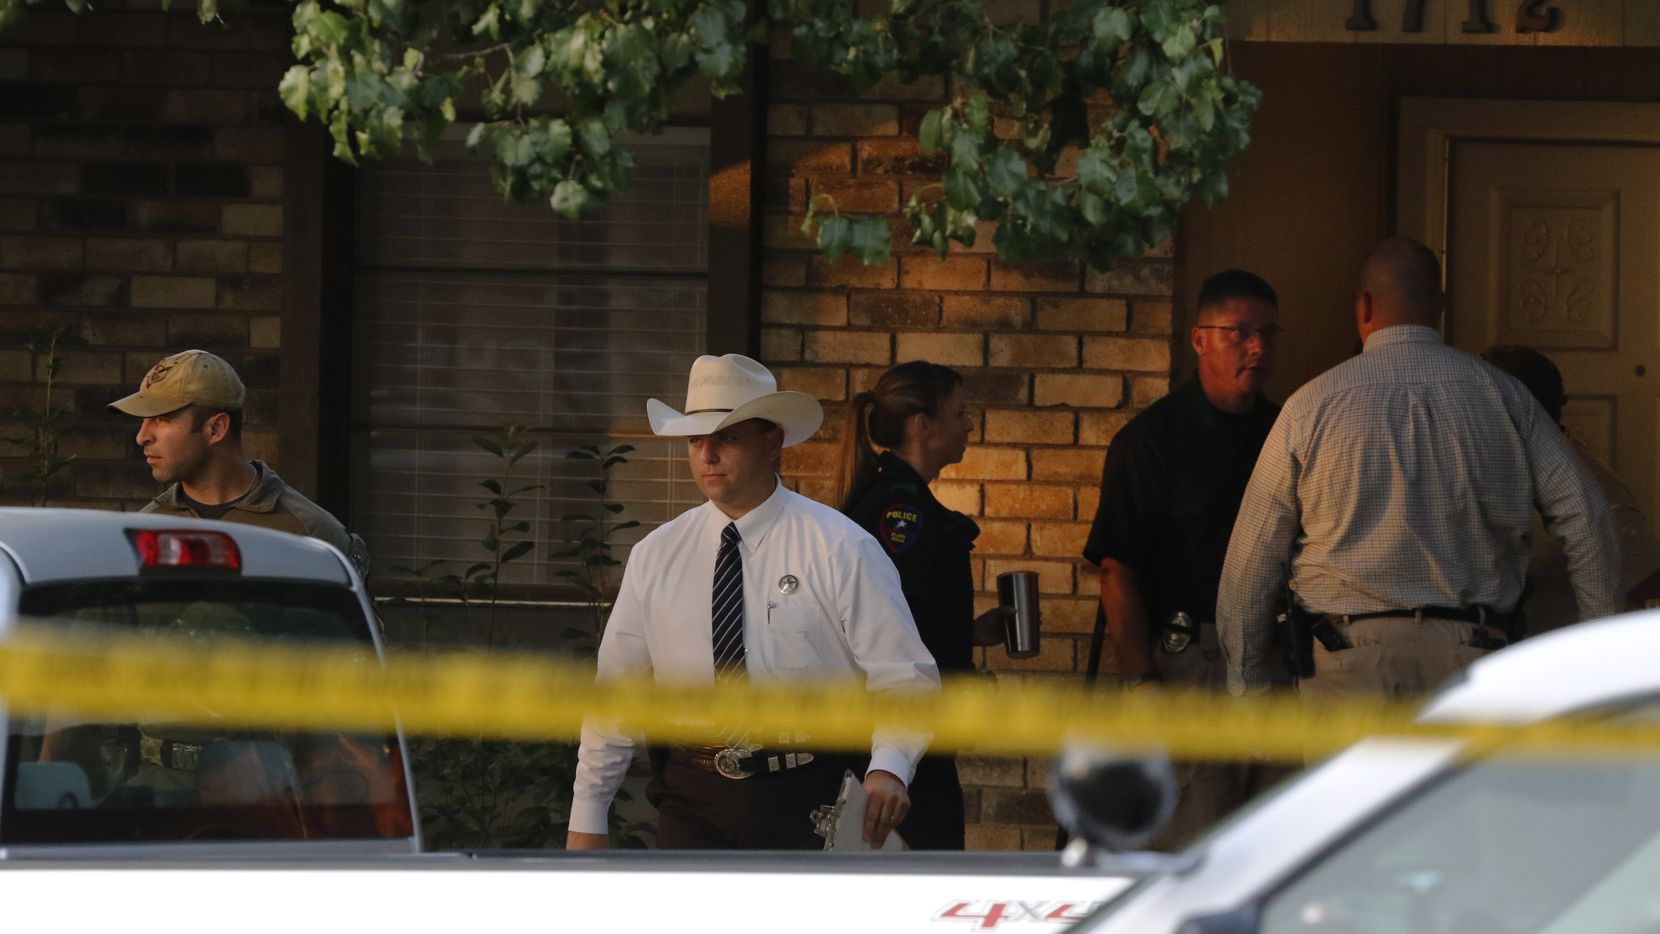 Plano police and the Texas Rangers work the scene of a shooting at a home in the 1700 block of West Spring Creek Parkway in Plano on Monday.